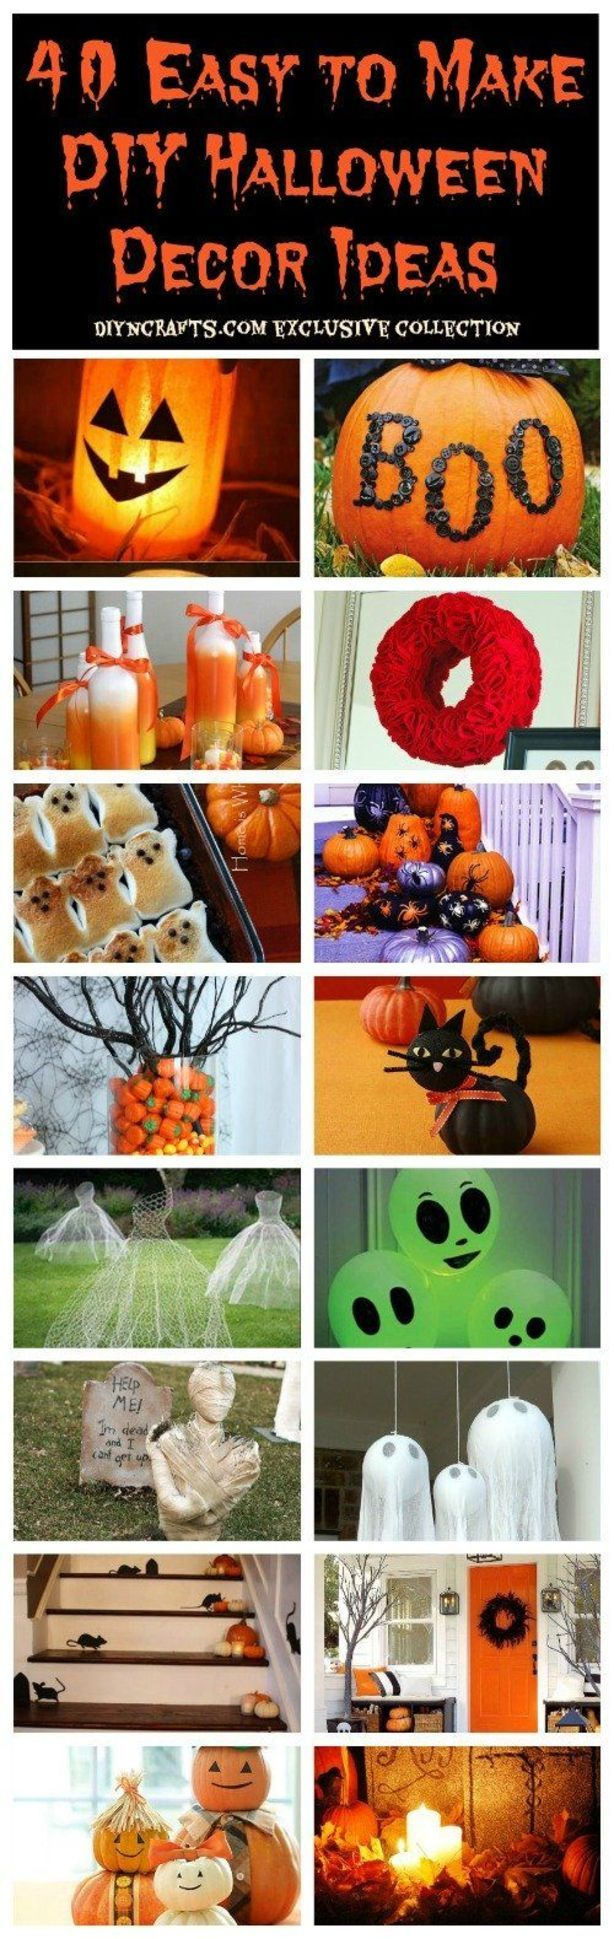 25 beste idee n over kinder halloween knutselen op pinterest pompoen knutsel ideeen - Decoratie voor halloween is jezelf ...